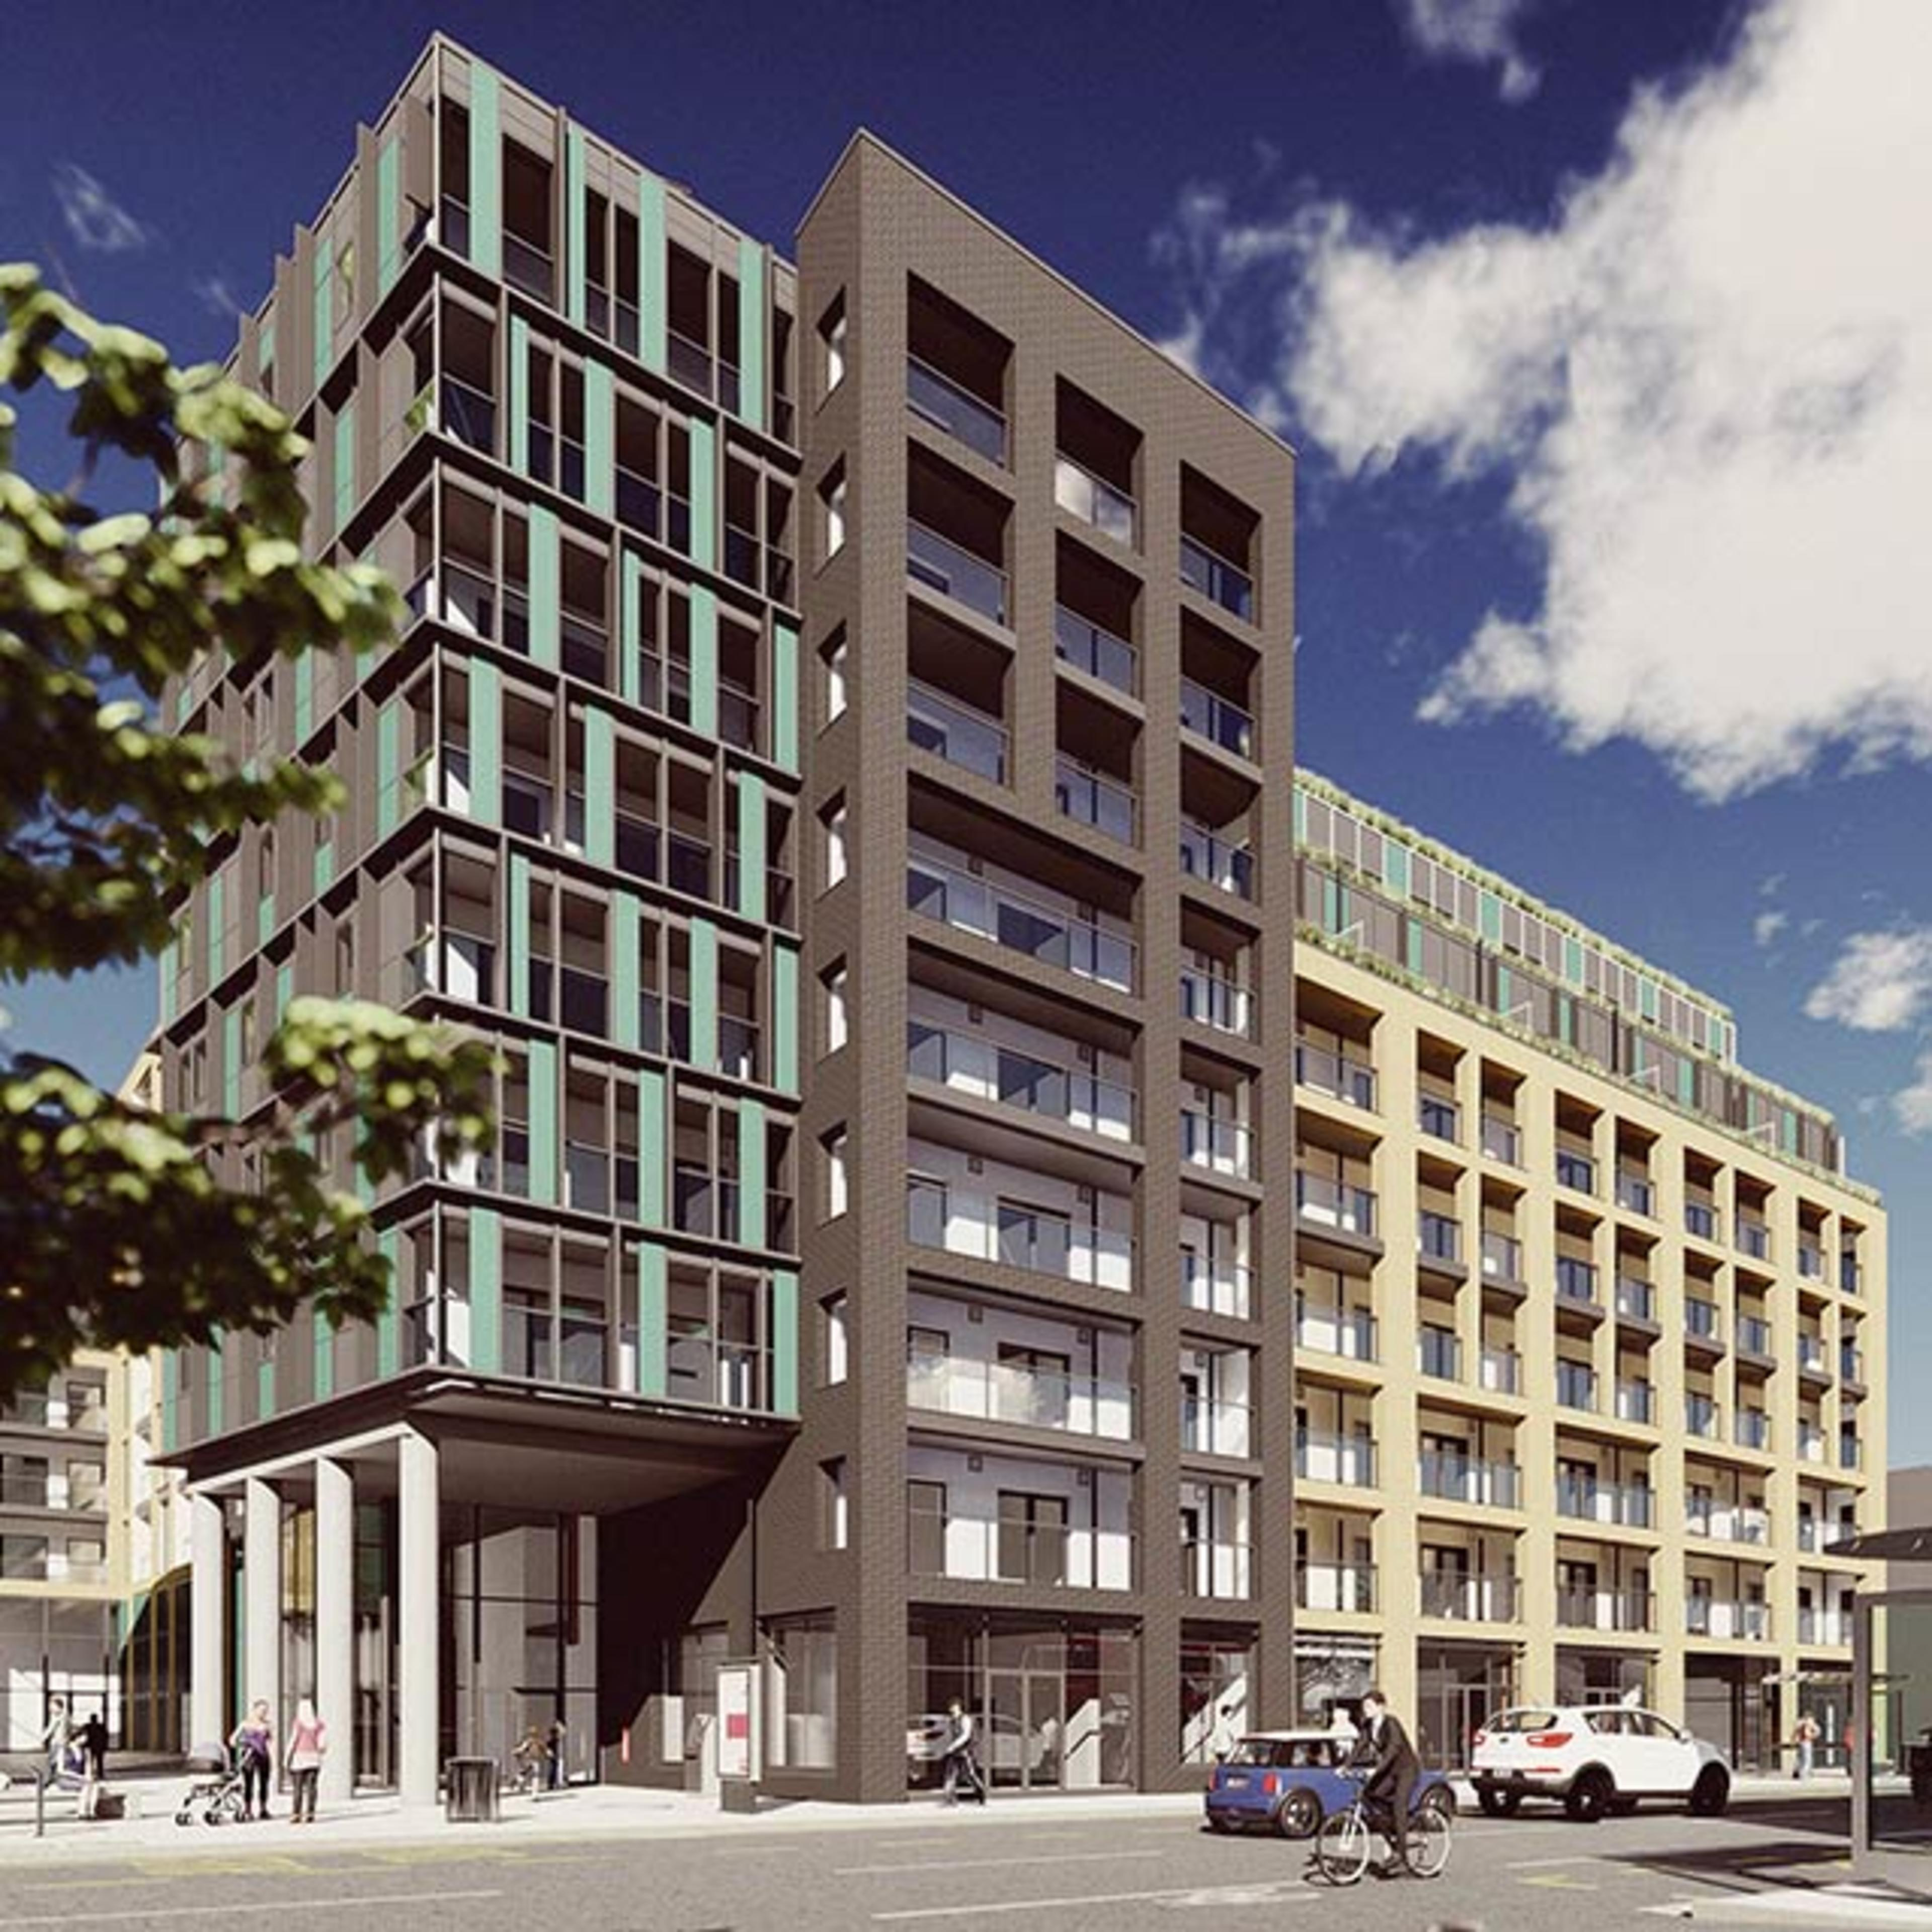 External CGI of RUB1X - a new build apartment building in Southall, London